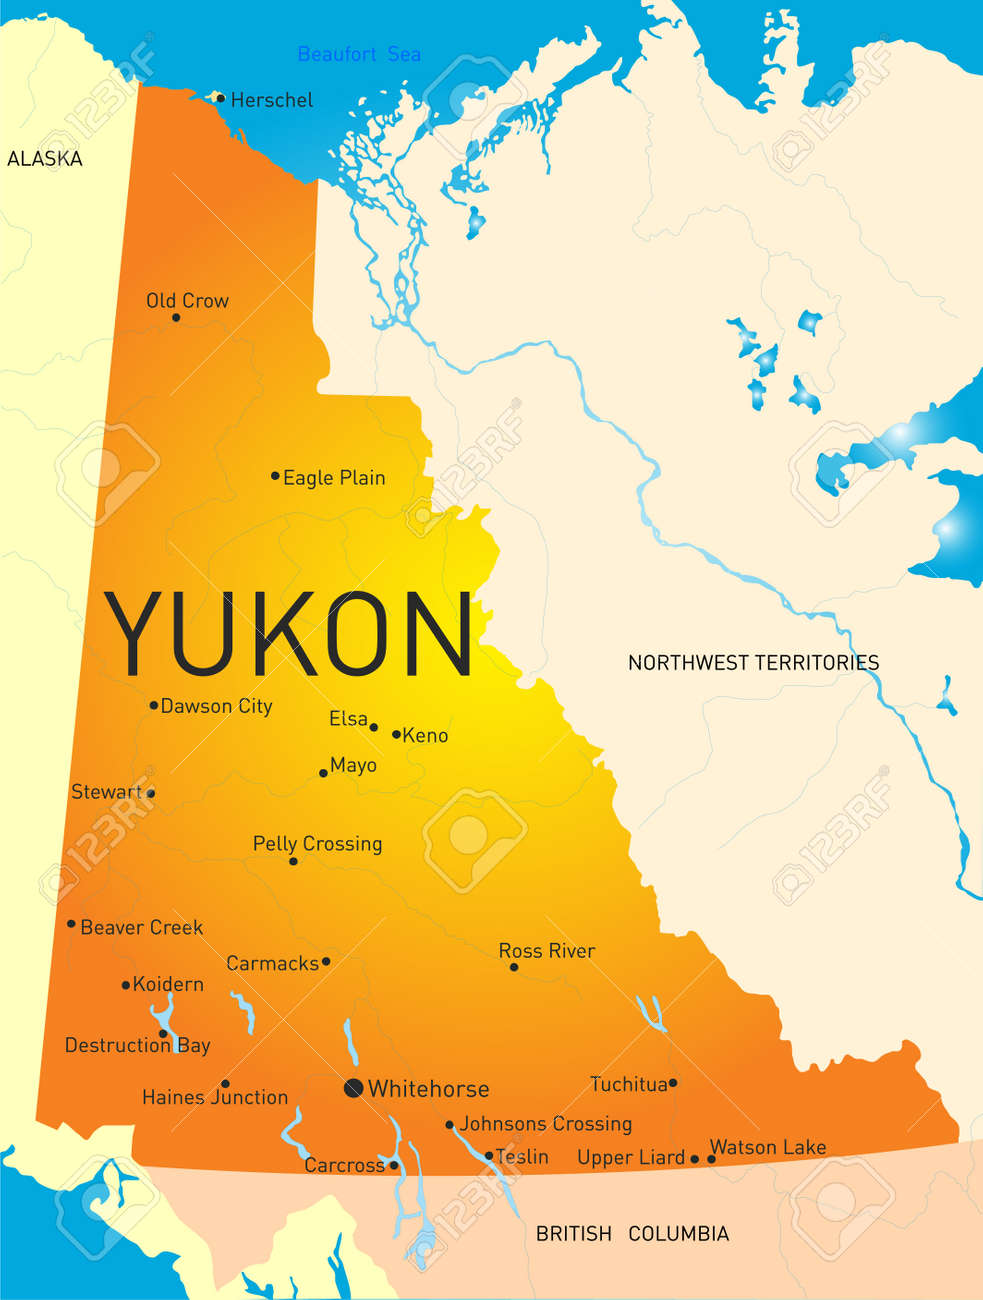 Yukon Province Color Map Royalty Free Cliparts Vectors And Stock - Yukon map